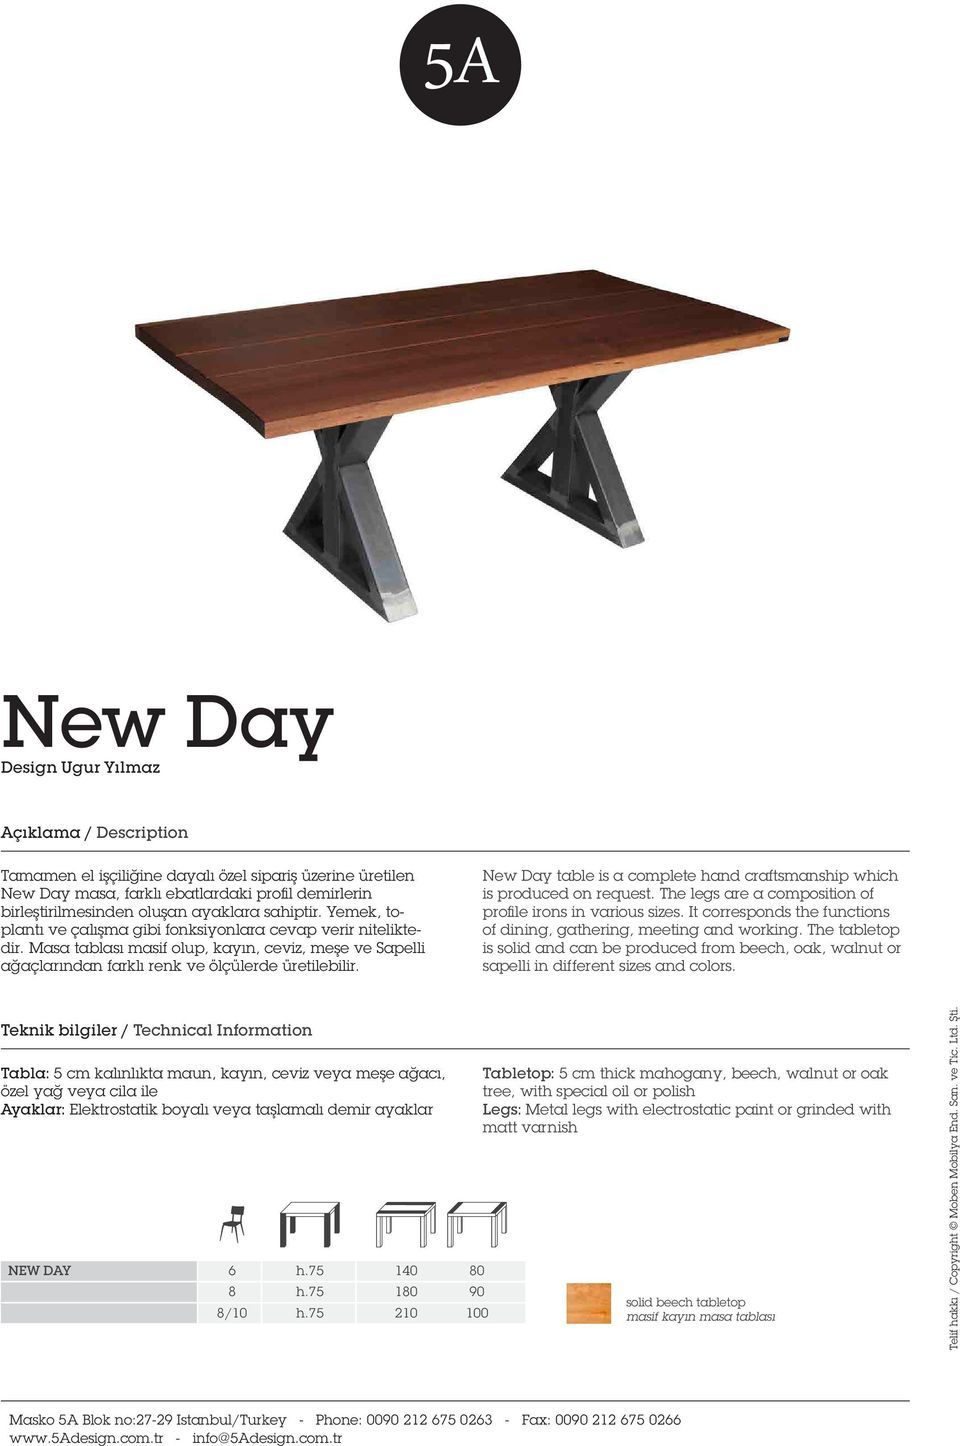 New Day table is a complete hand craftsmanship which is produced on request. The legs are a composition of profile irons in various sizes.